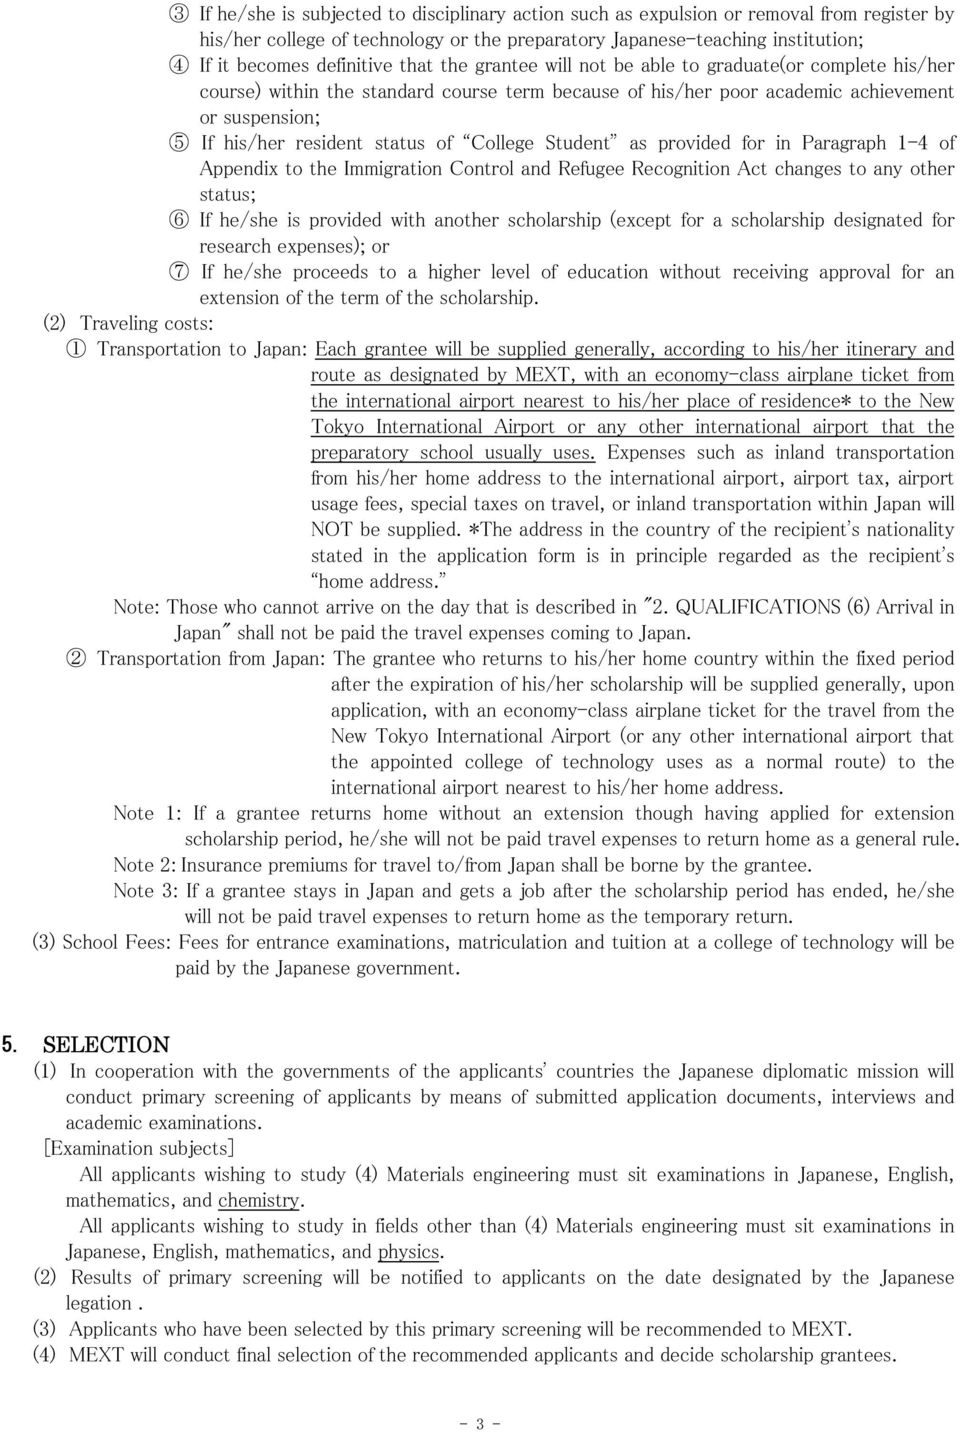 status of College Student as provided for in Paragraph 1-4 of Appendix to the Immigration Control and Refugee Recognition Act changes to any other status; 6 If he/she is provided with another